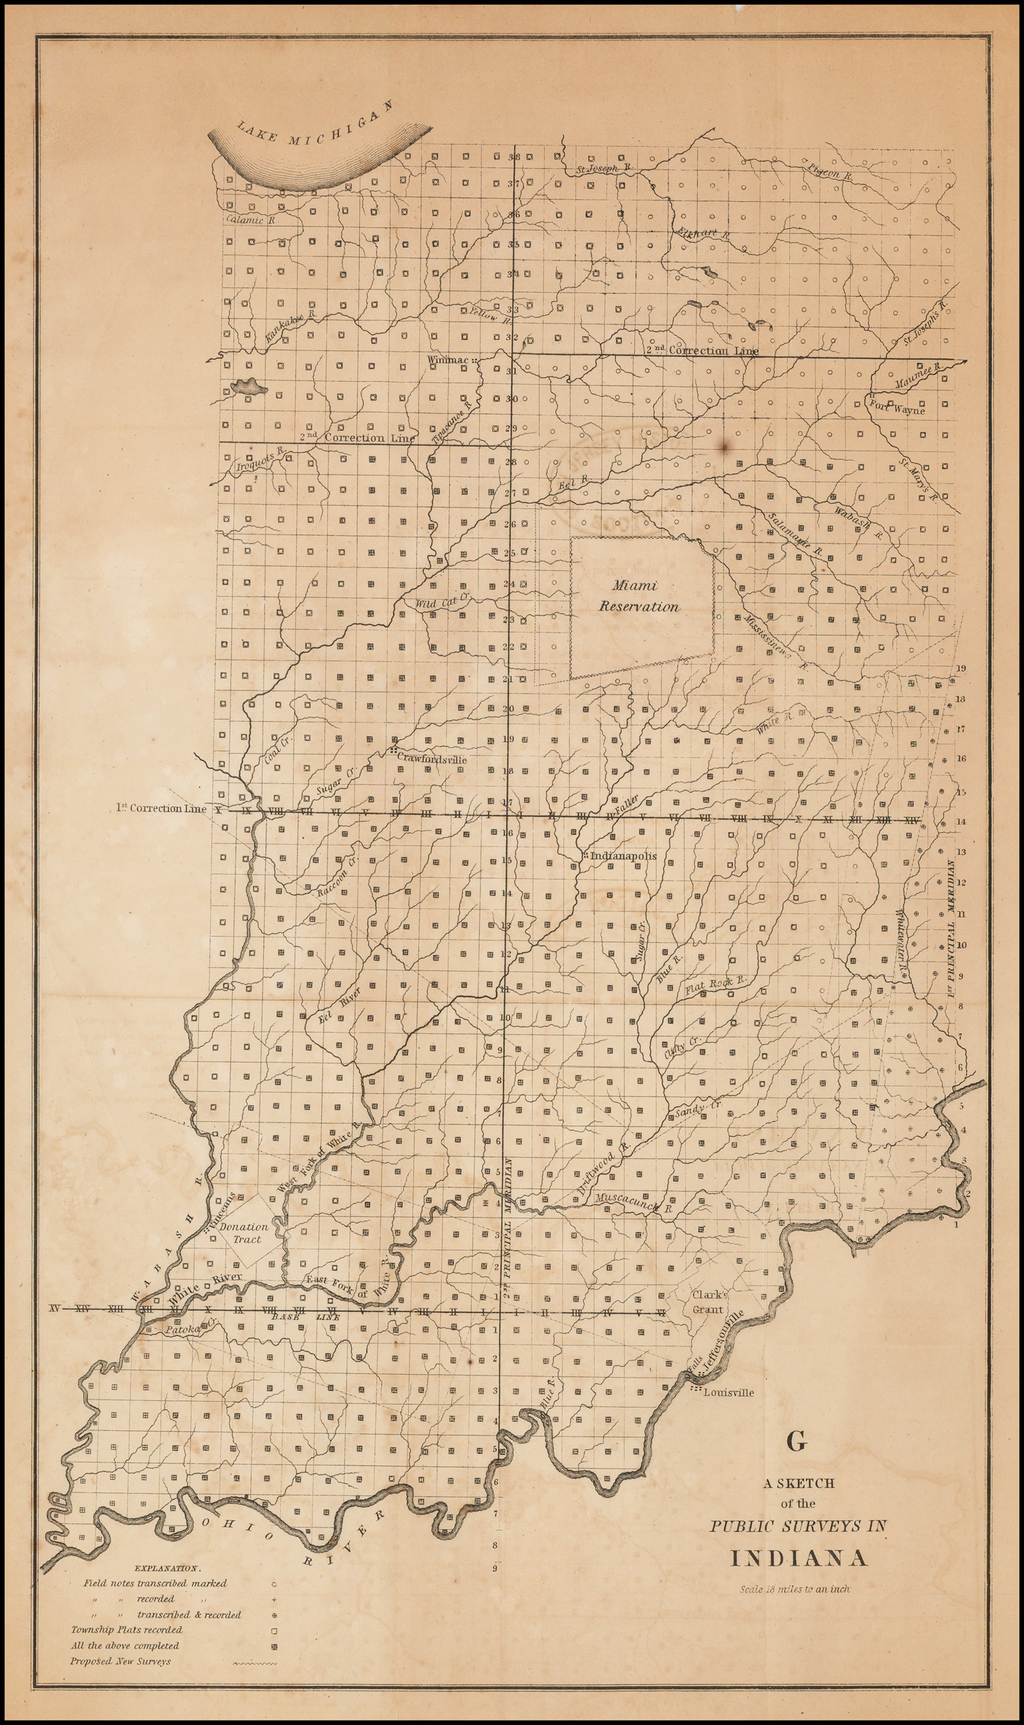 A Sketch of the Public Surveys In Indiana  Scale 18 miles to an inch. By U.S. State Surveys / Smith & McClellan